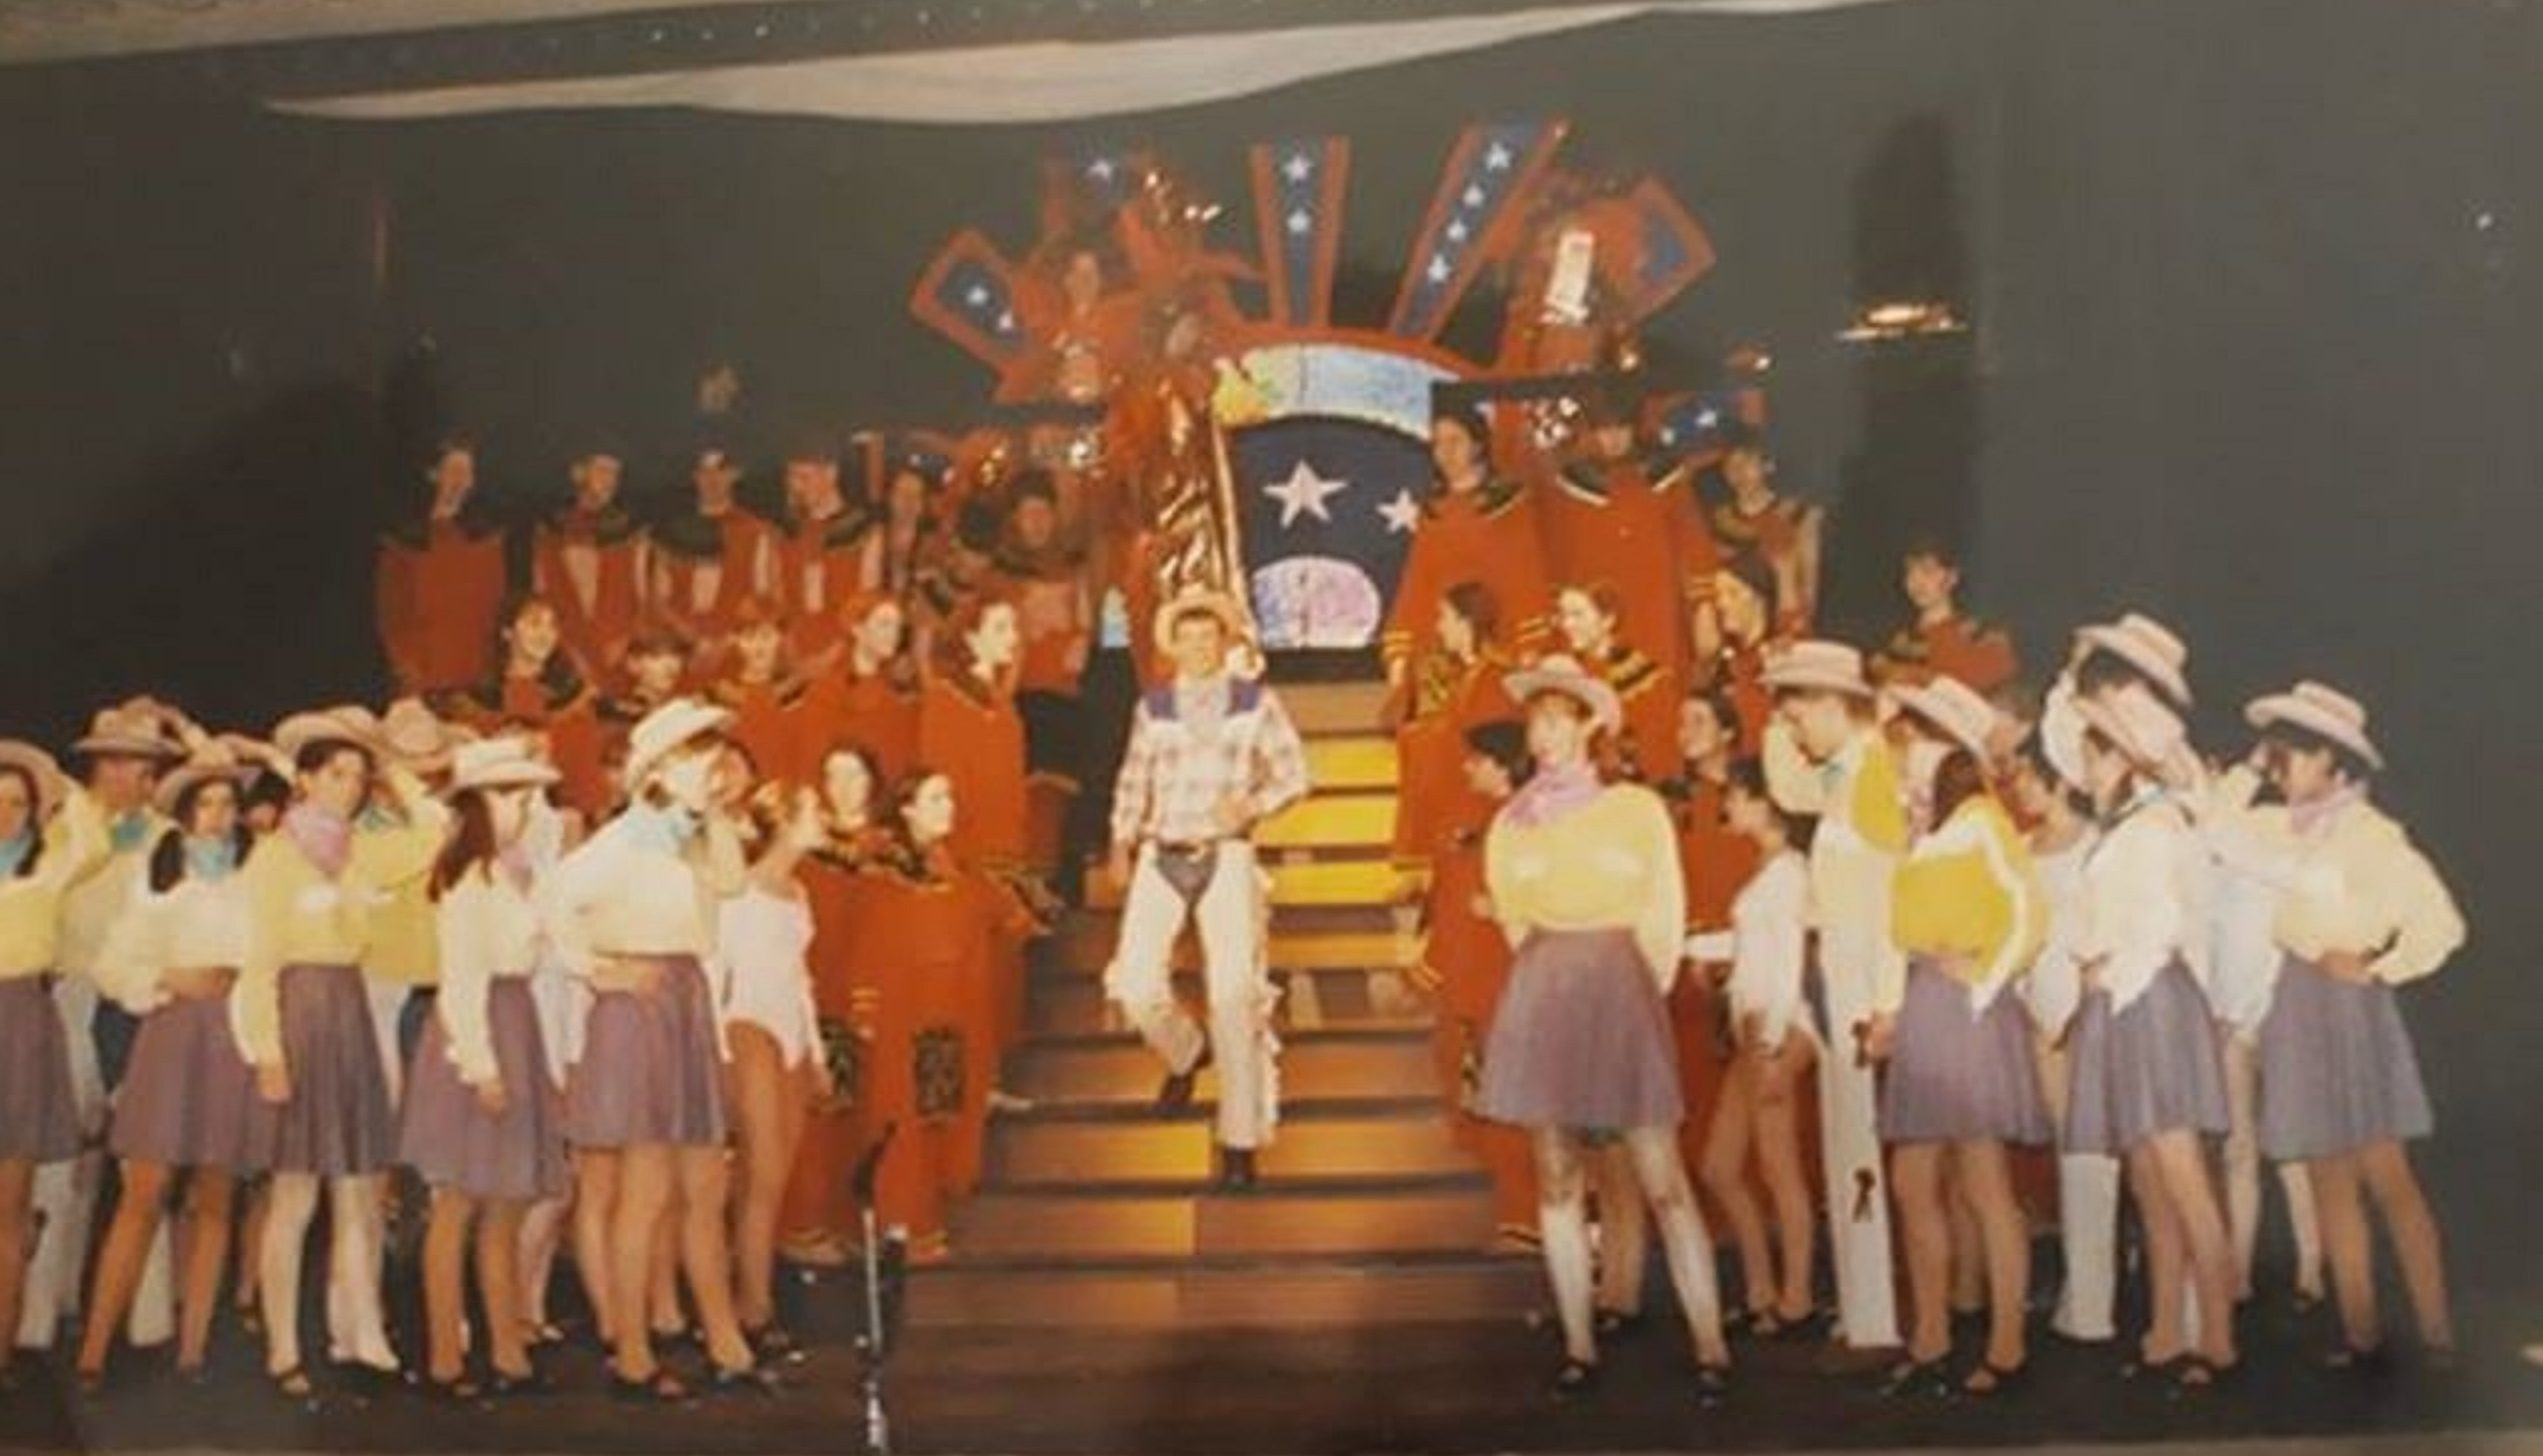 Members oF Kirkcaldy Youth Music Theatre perform the Scottish Premiere of Will ROgers Follies i 1996